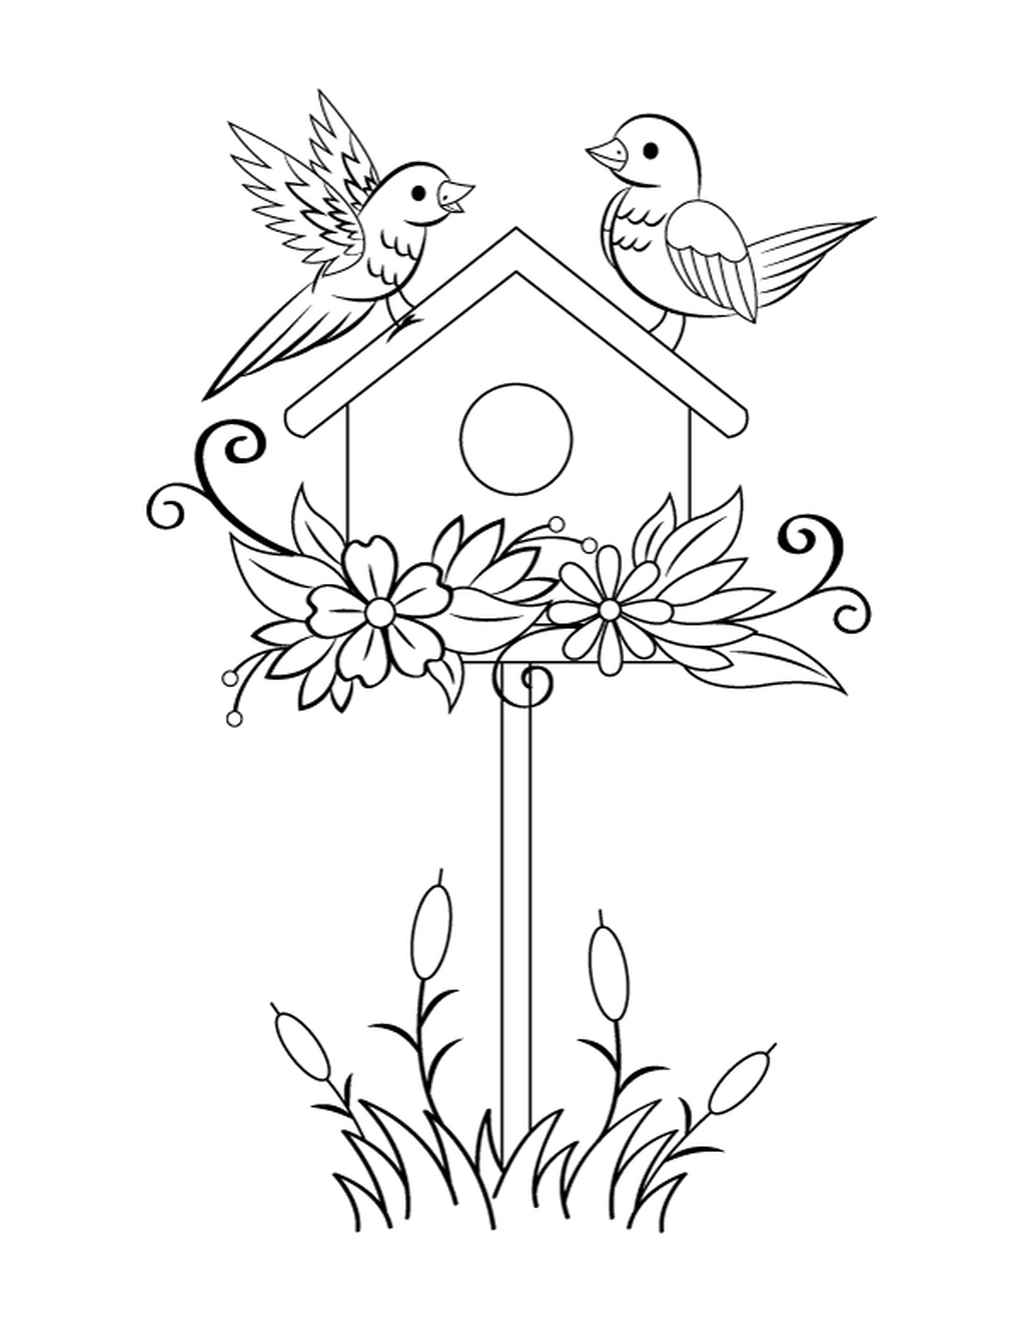 Two Birds And A Birdhouse Coloring Page